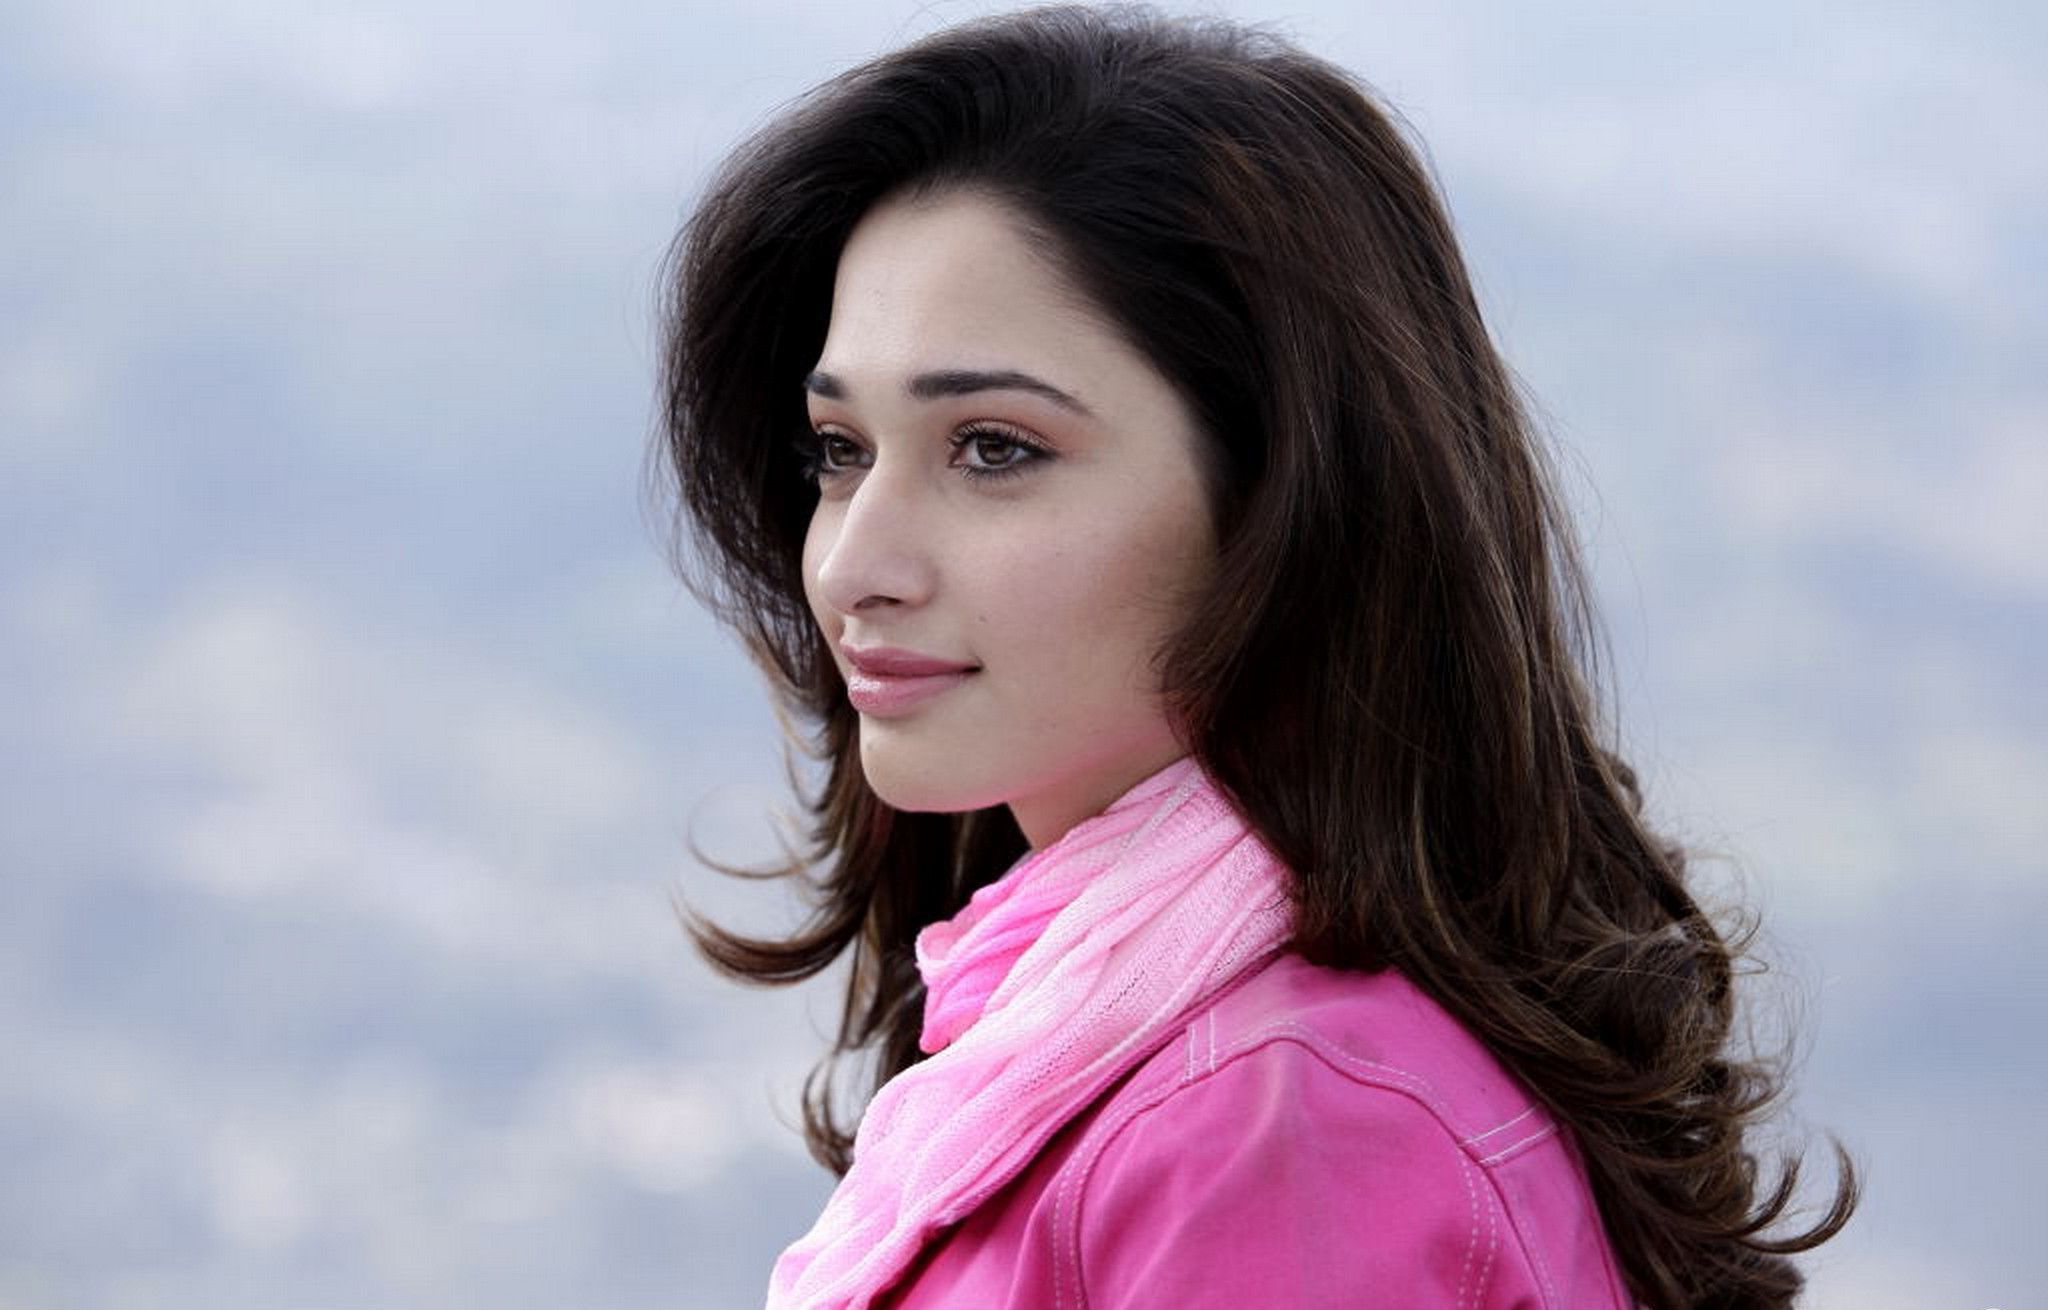 Tamanna Bhatia Wallpapers, Pictures, Images